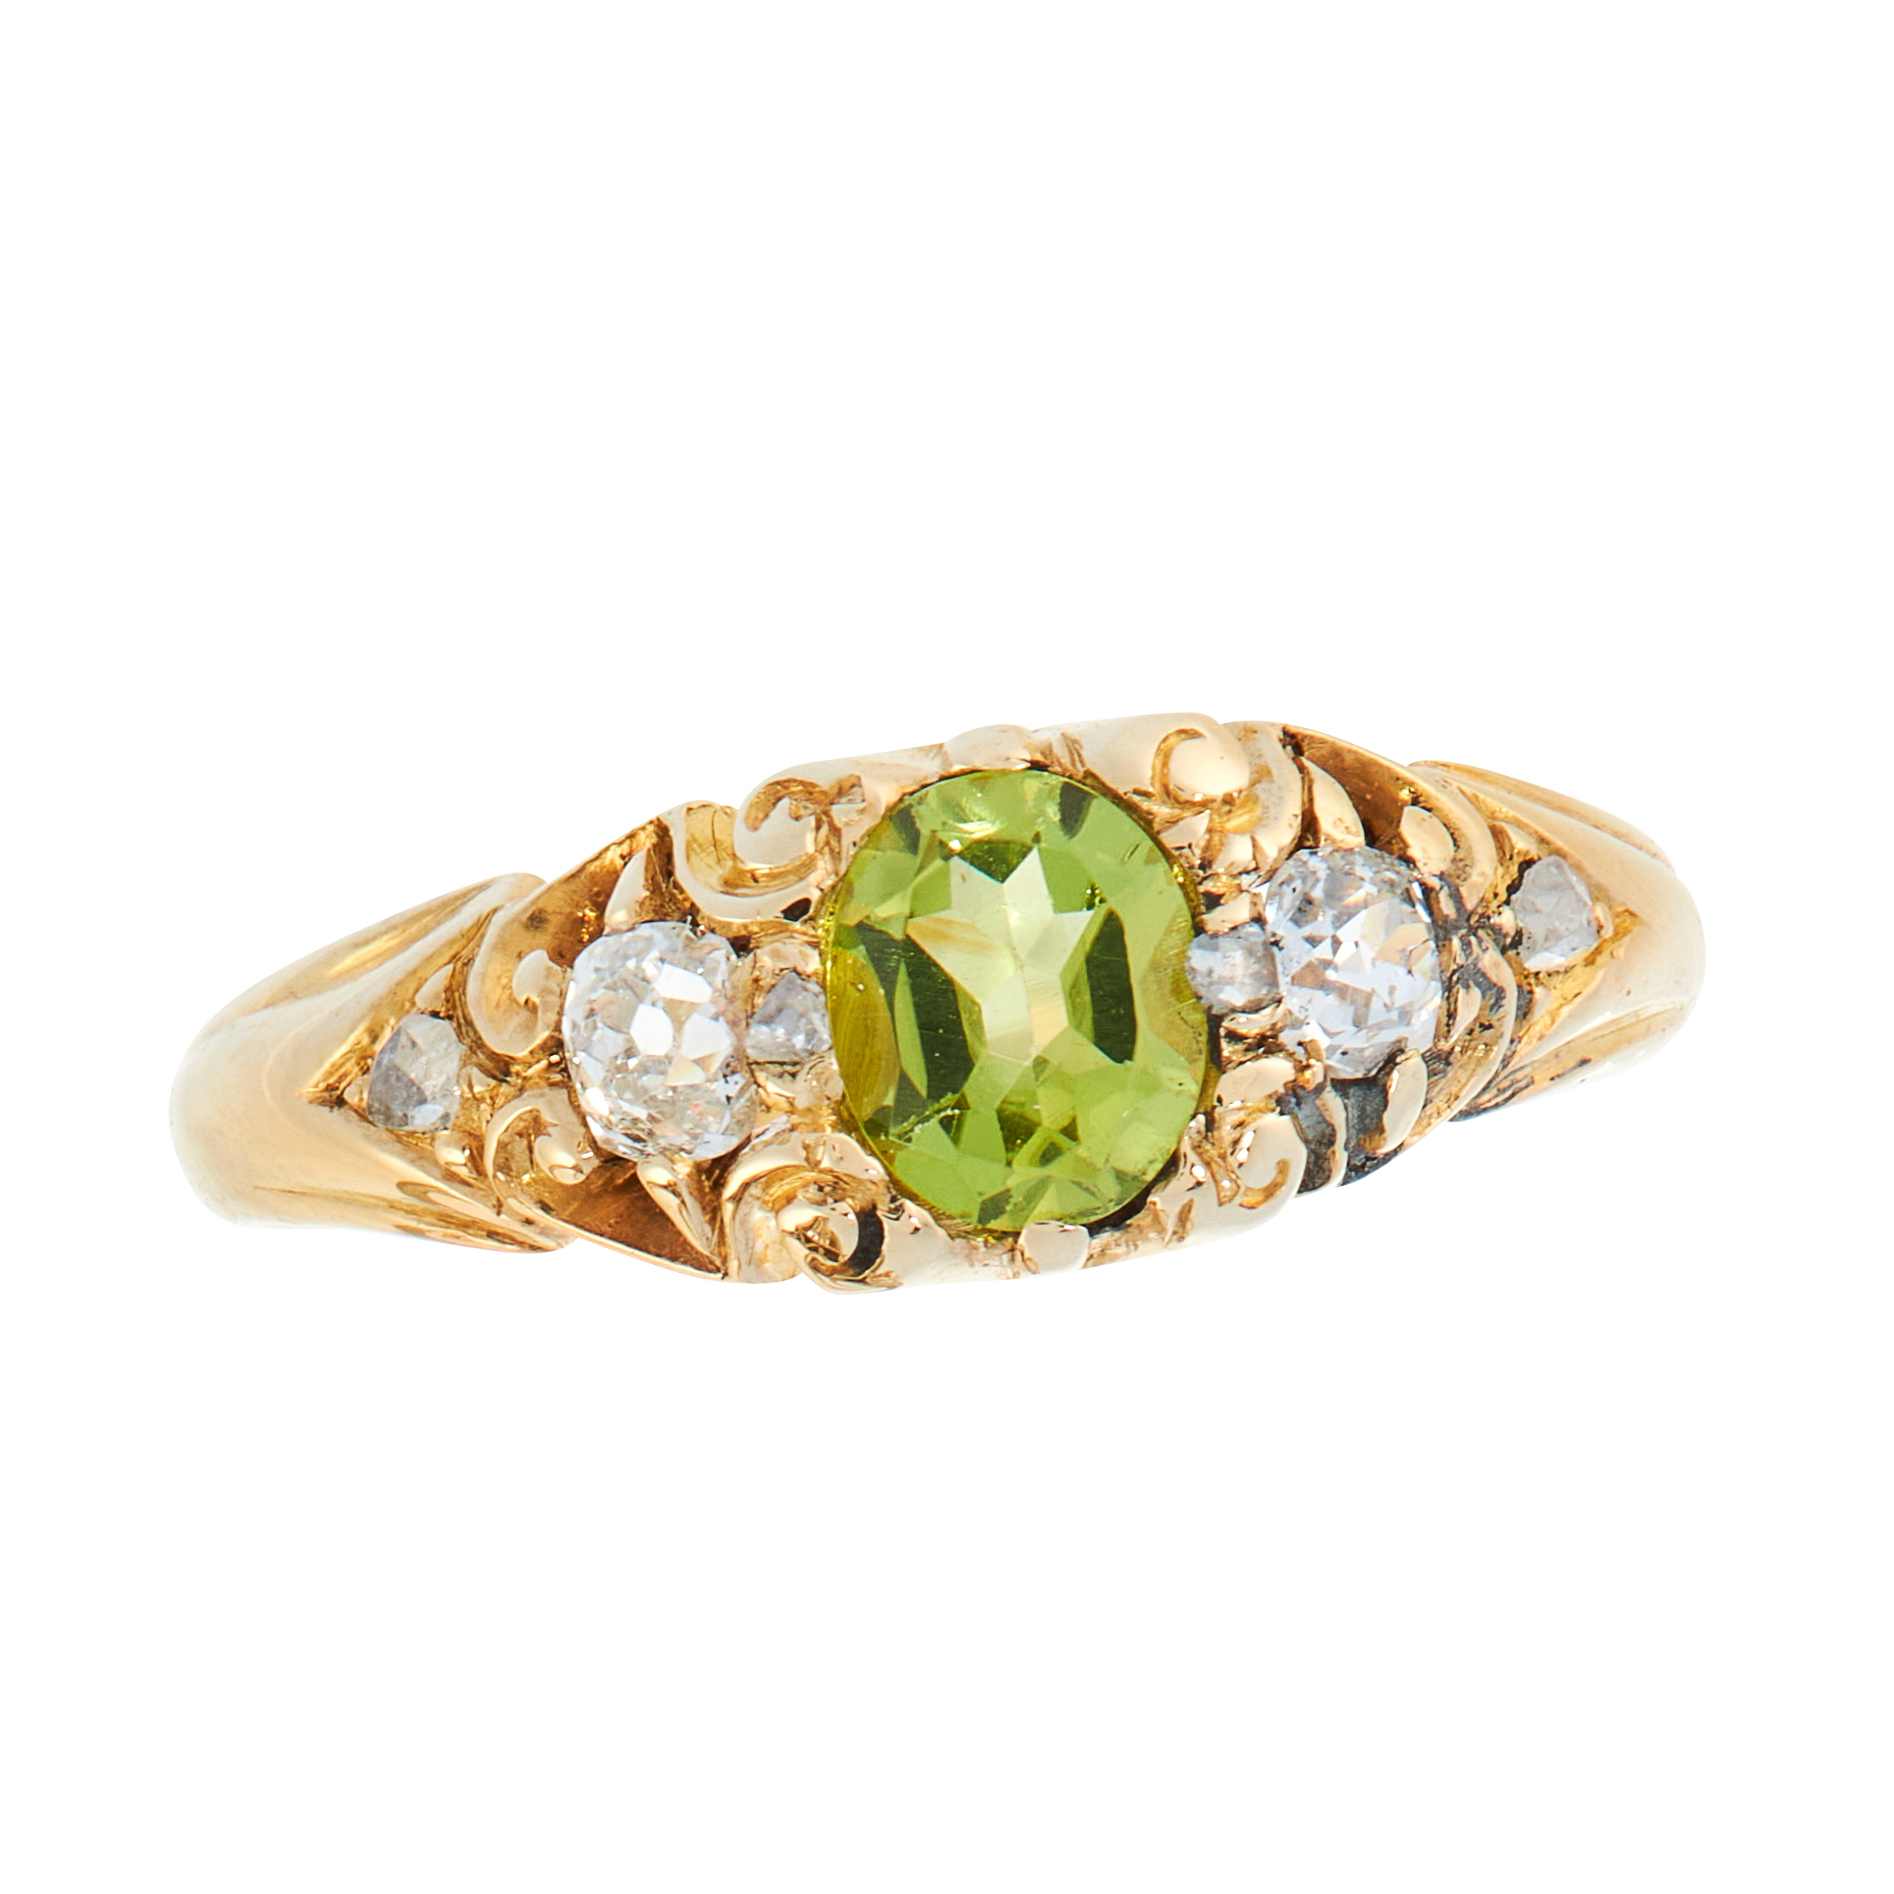 AN ANTIQUE PERIDOT AND DIAMOND DRESS RING, CIRCA 1900 in high carat yellow gold, set with an oval